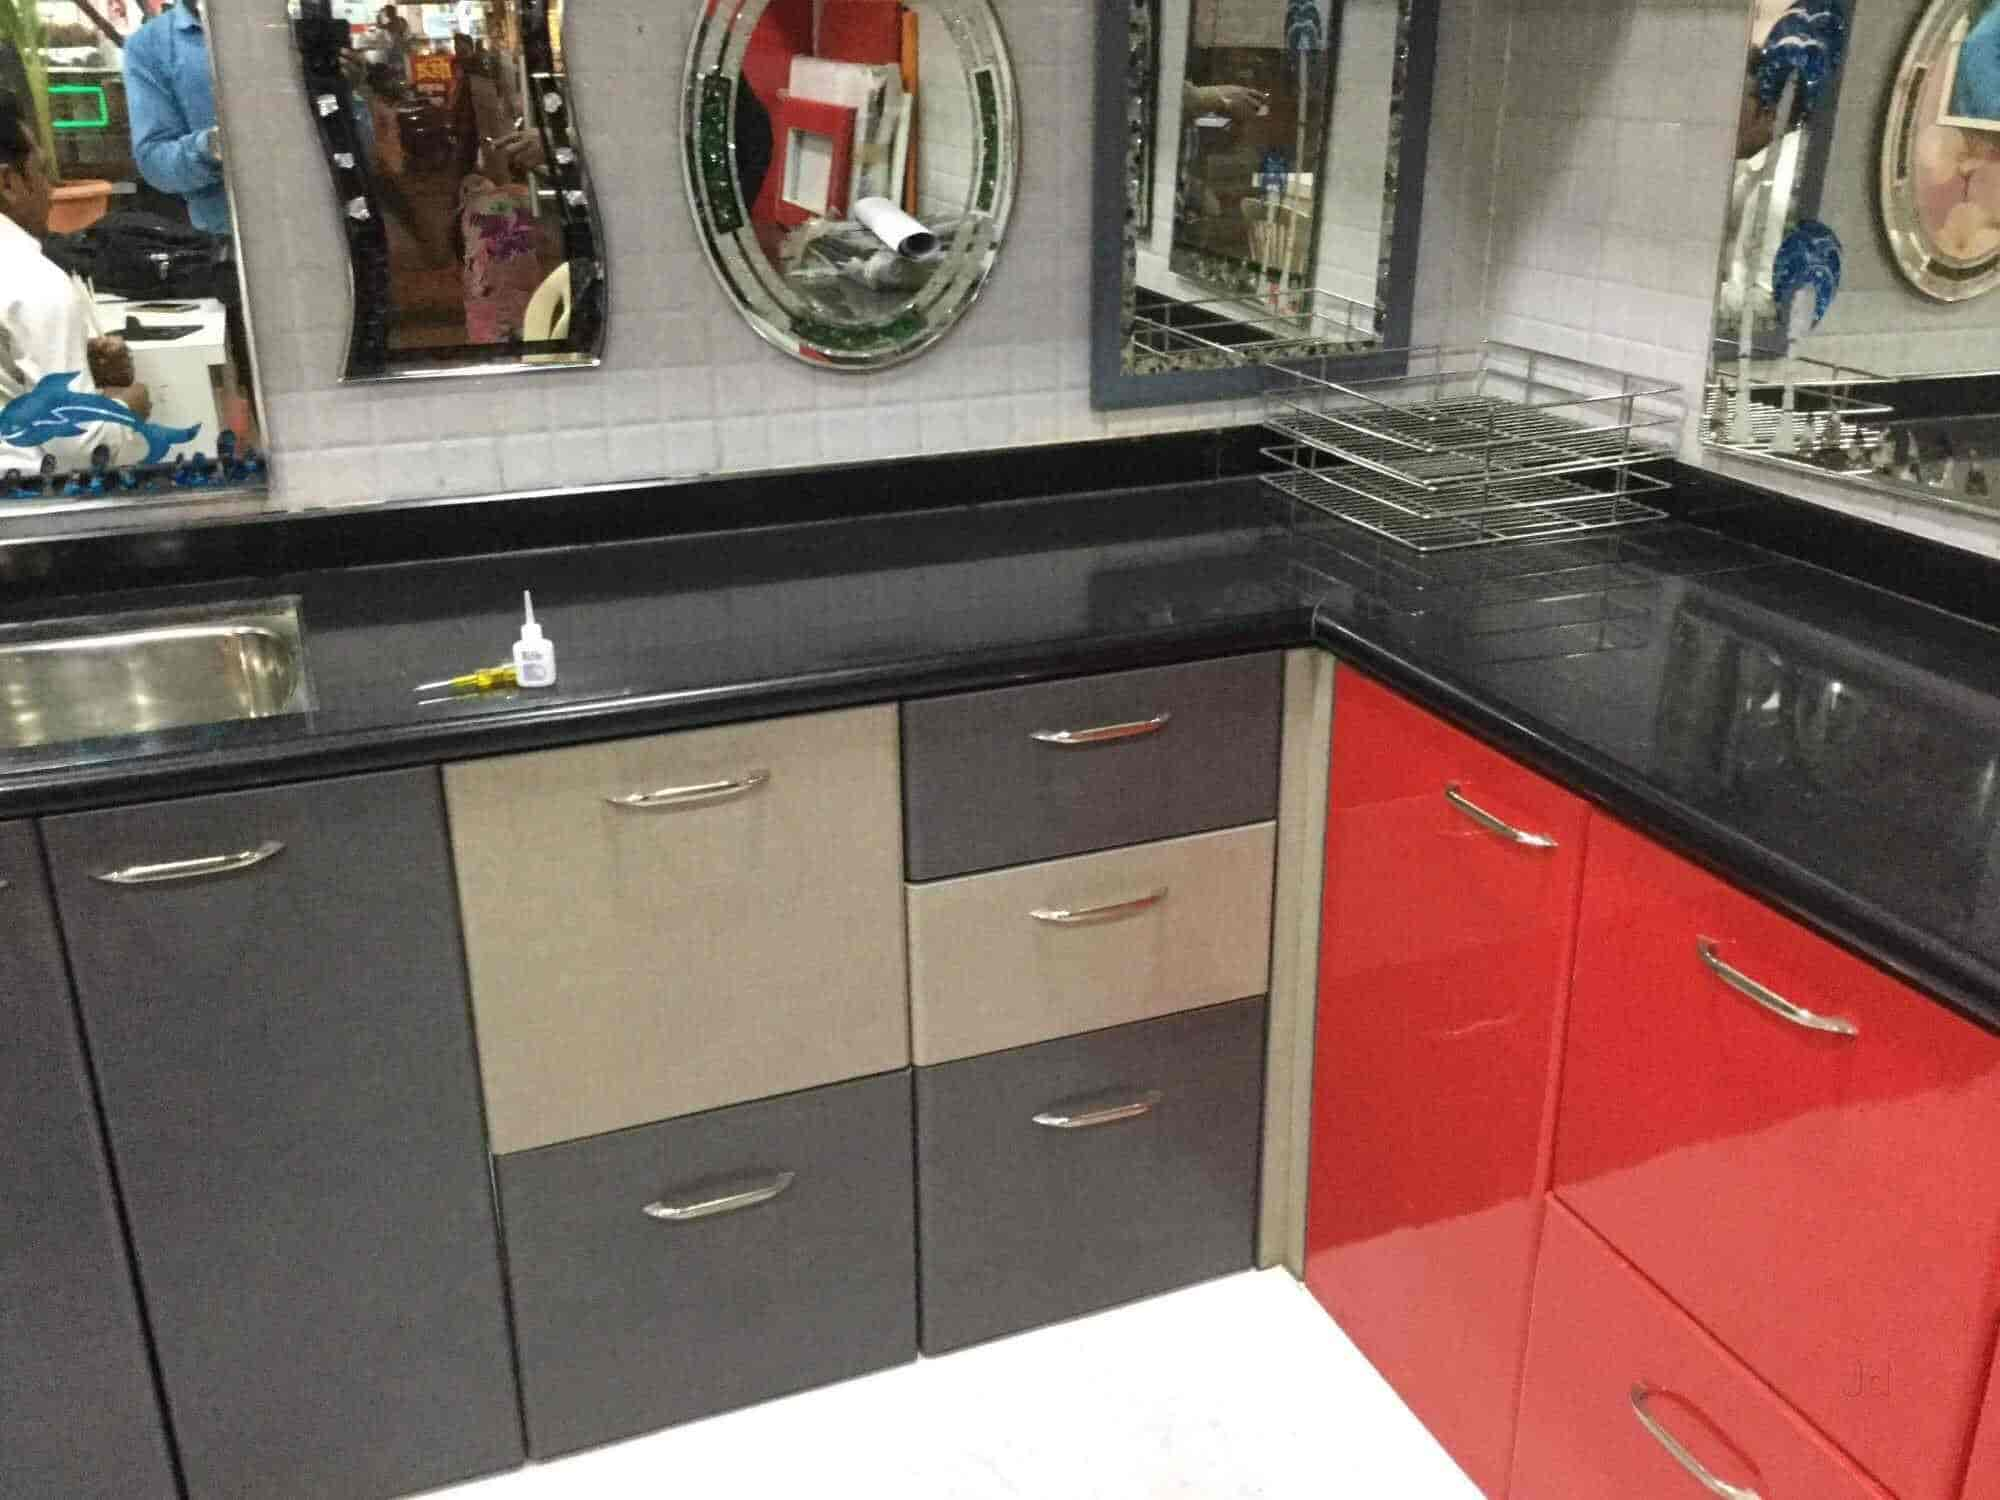 Charmant Kaveri Modular Kitchen Trolley And All Furniture, Chikhali   Kaaweri  Modular Kitchen Trolley And All Furniture   Interior Designers In Pune    Justdial